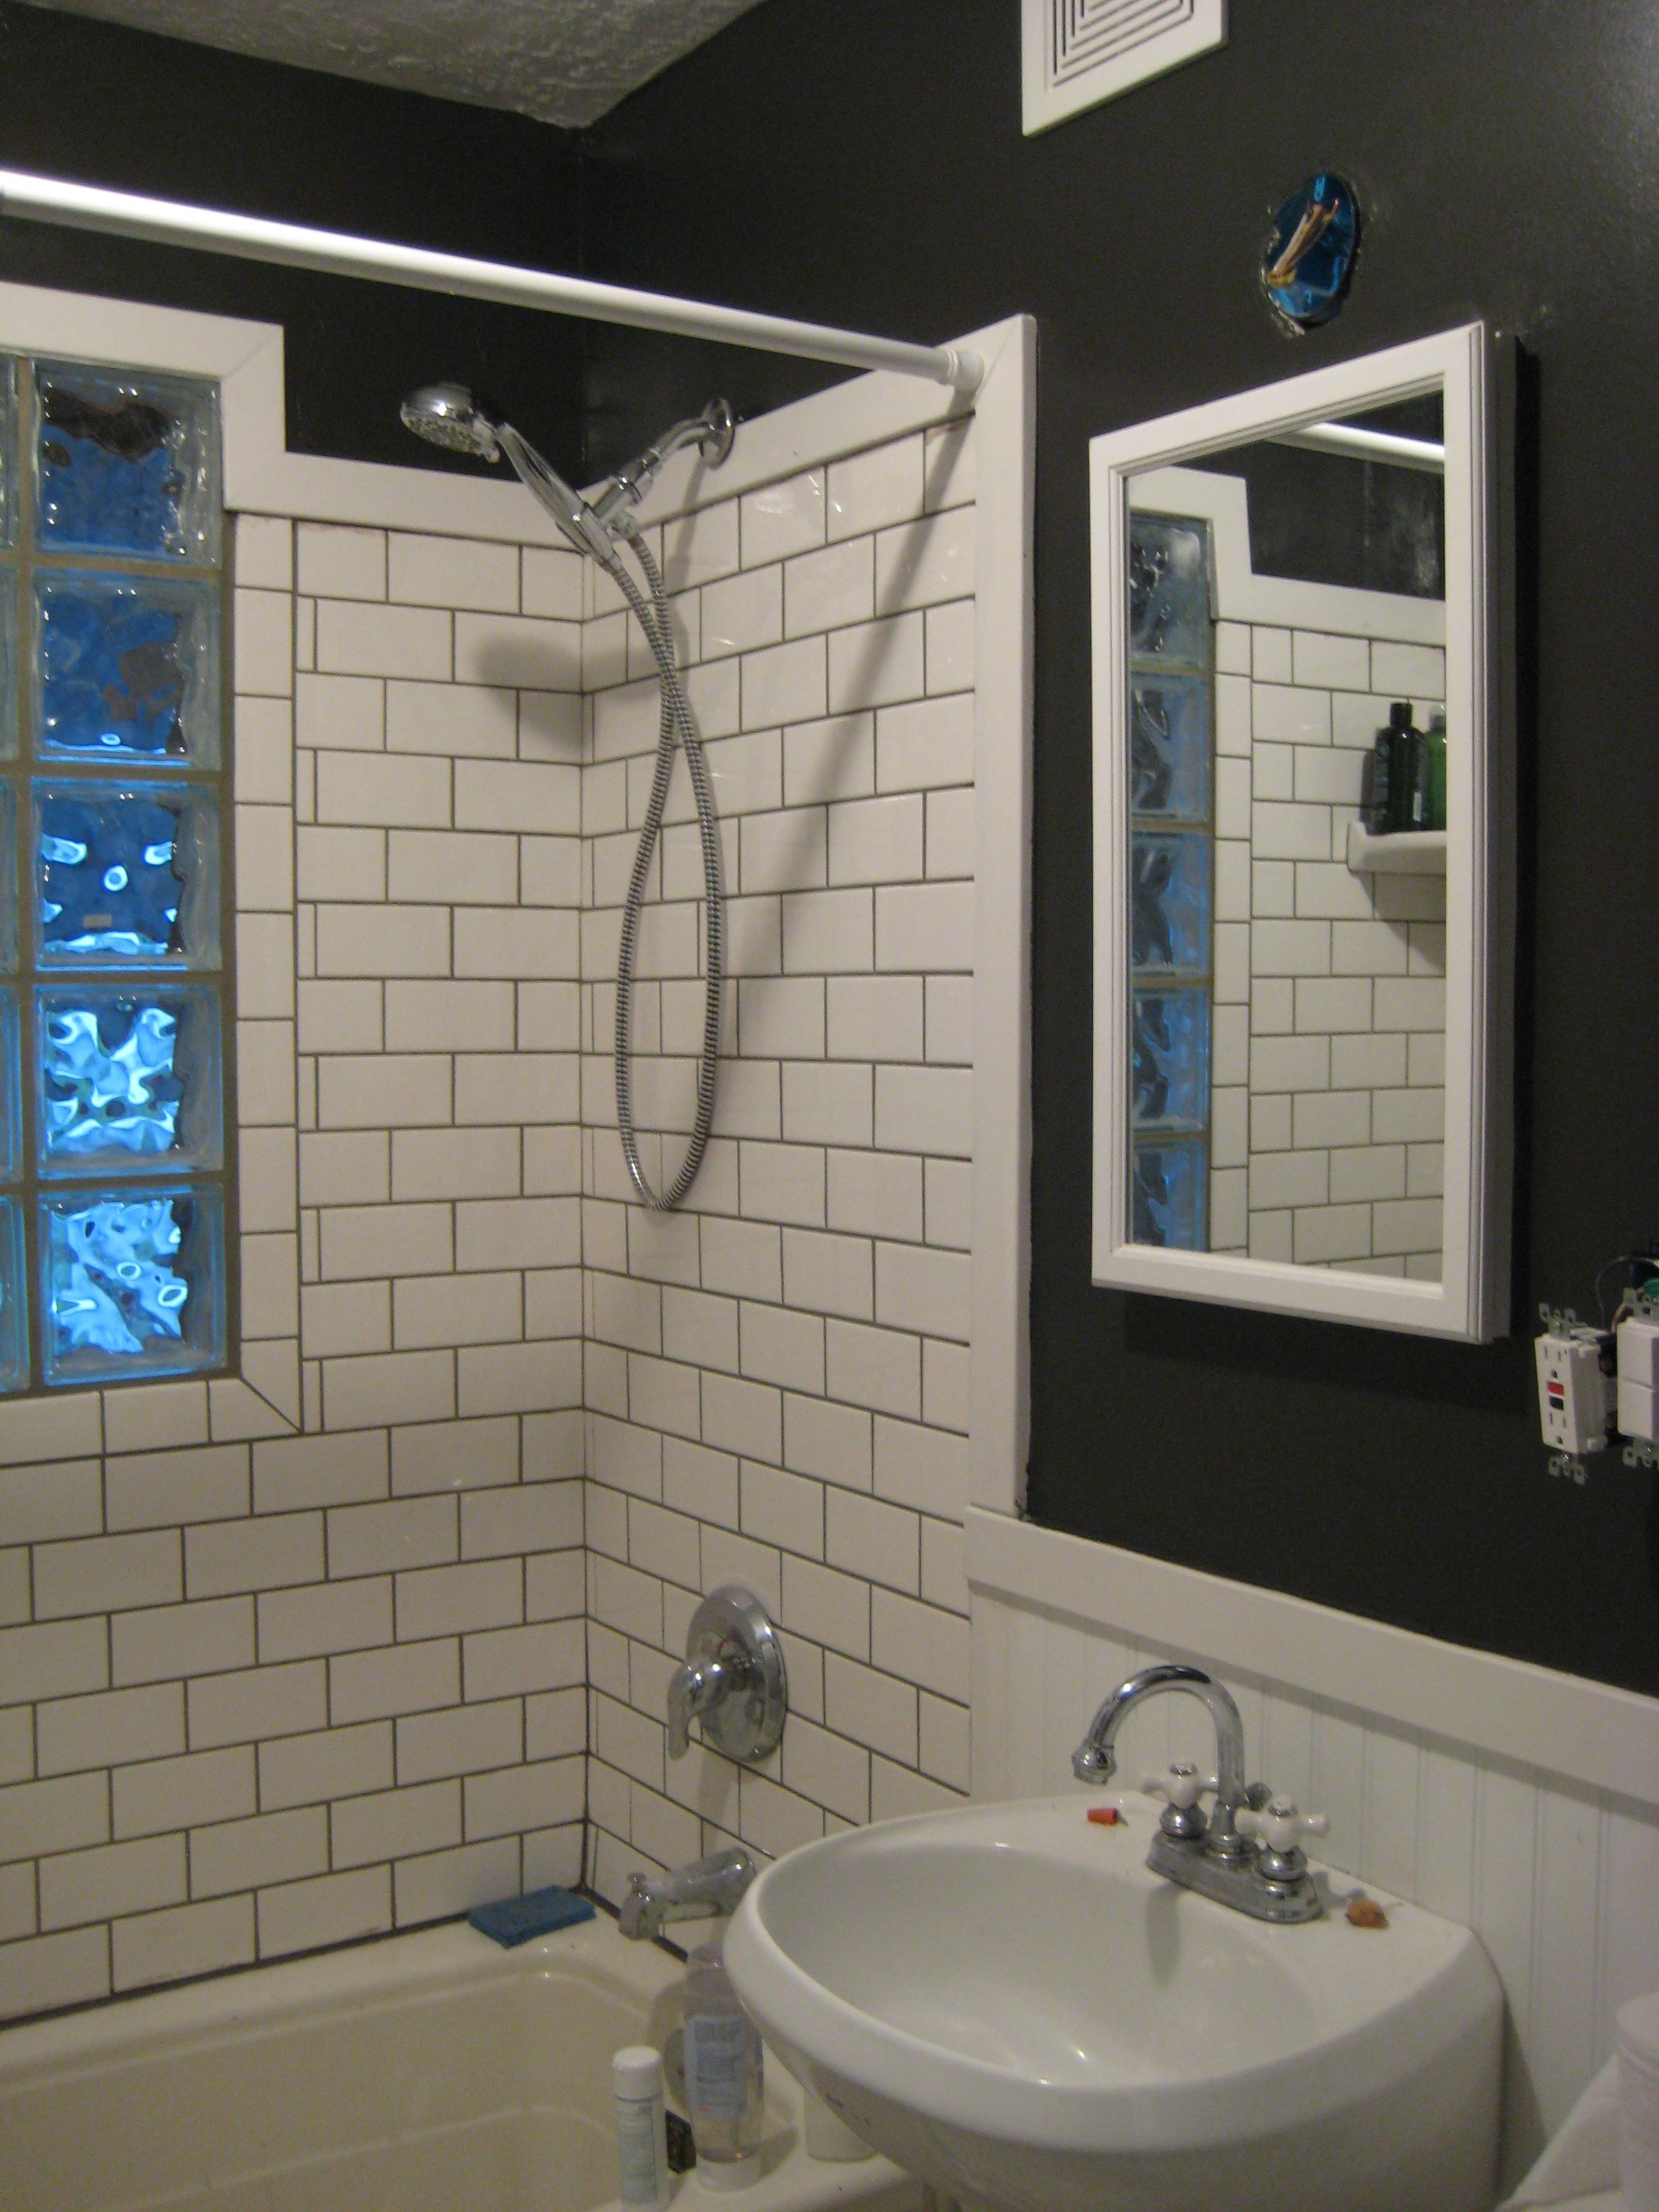 Remodel Bathroom With Window In Shower beadboard on walls, subway tile and glass block window in shower